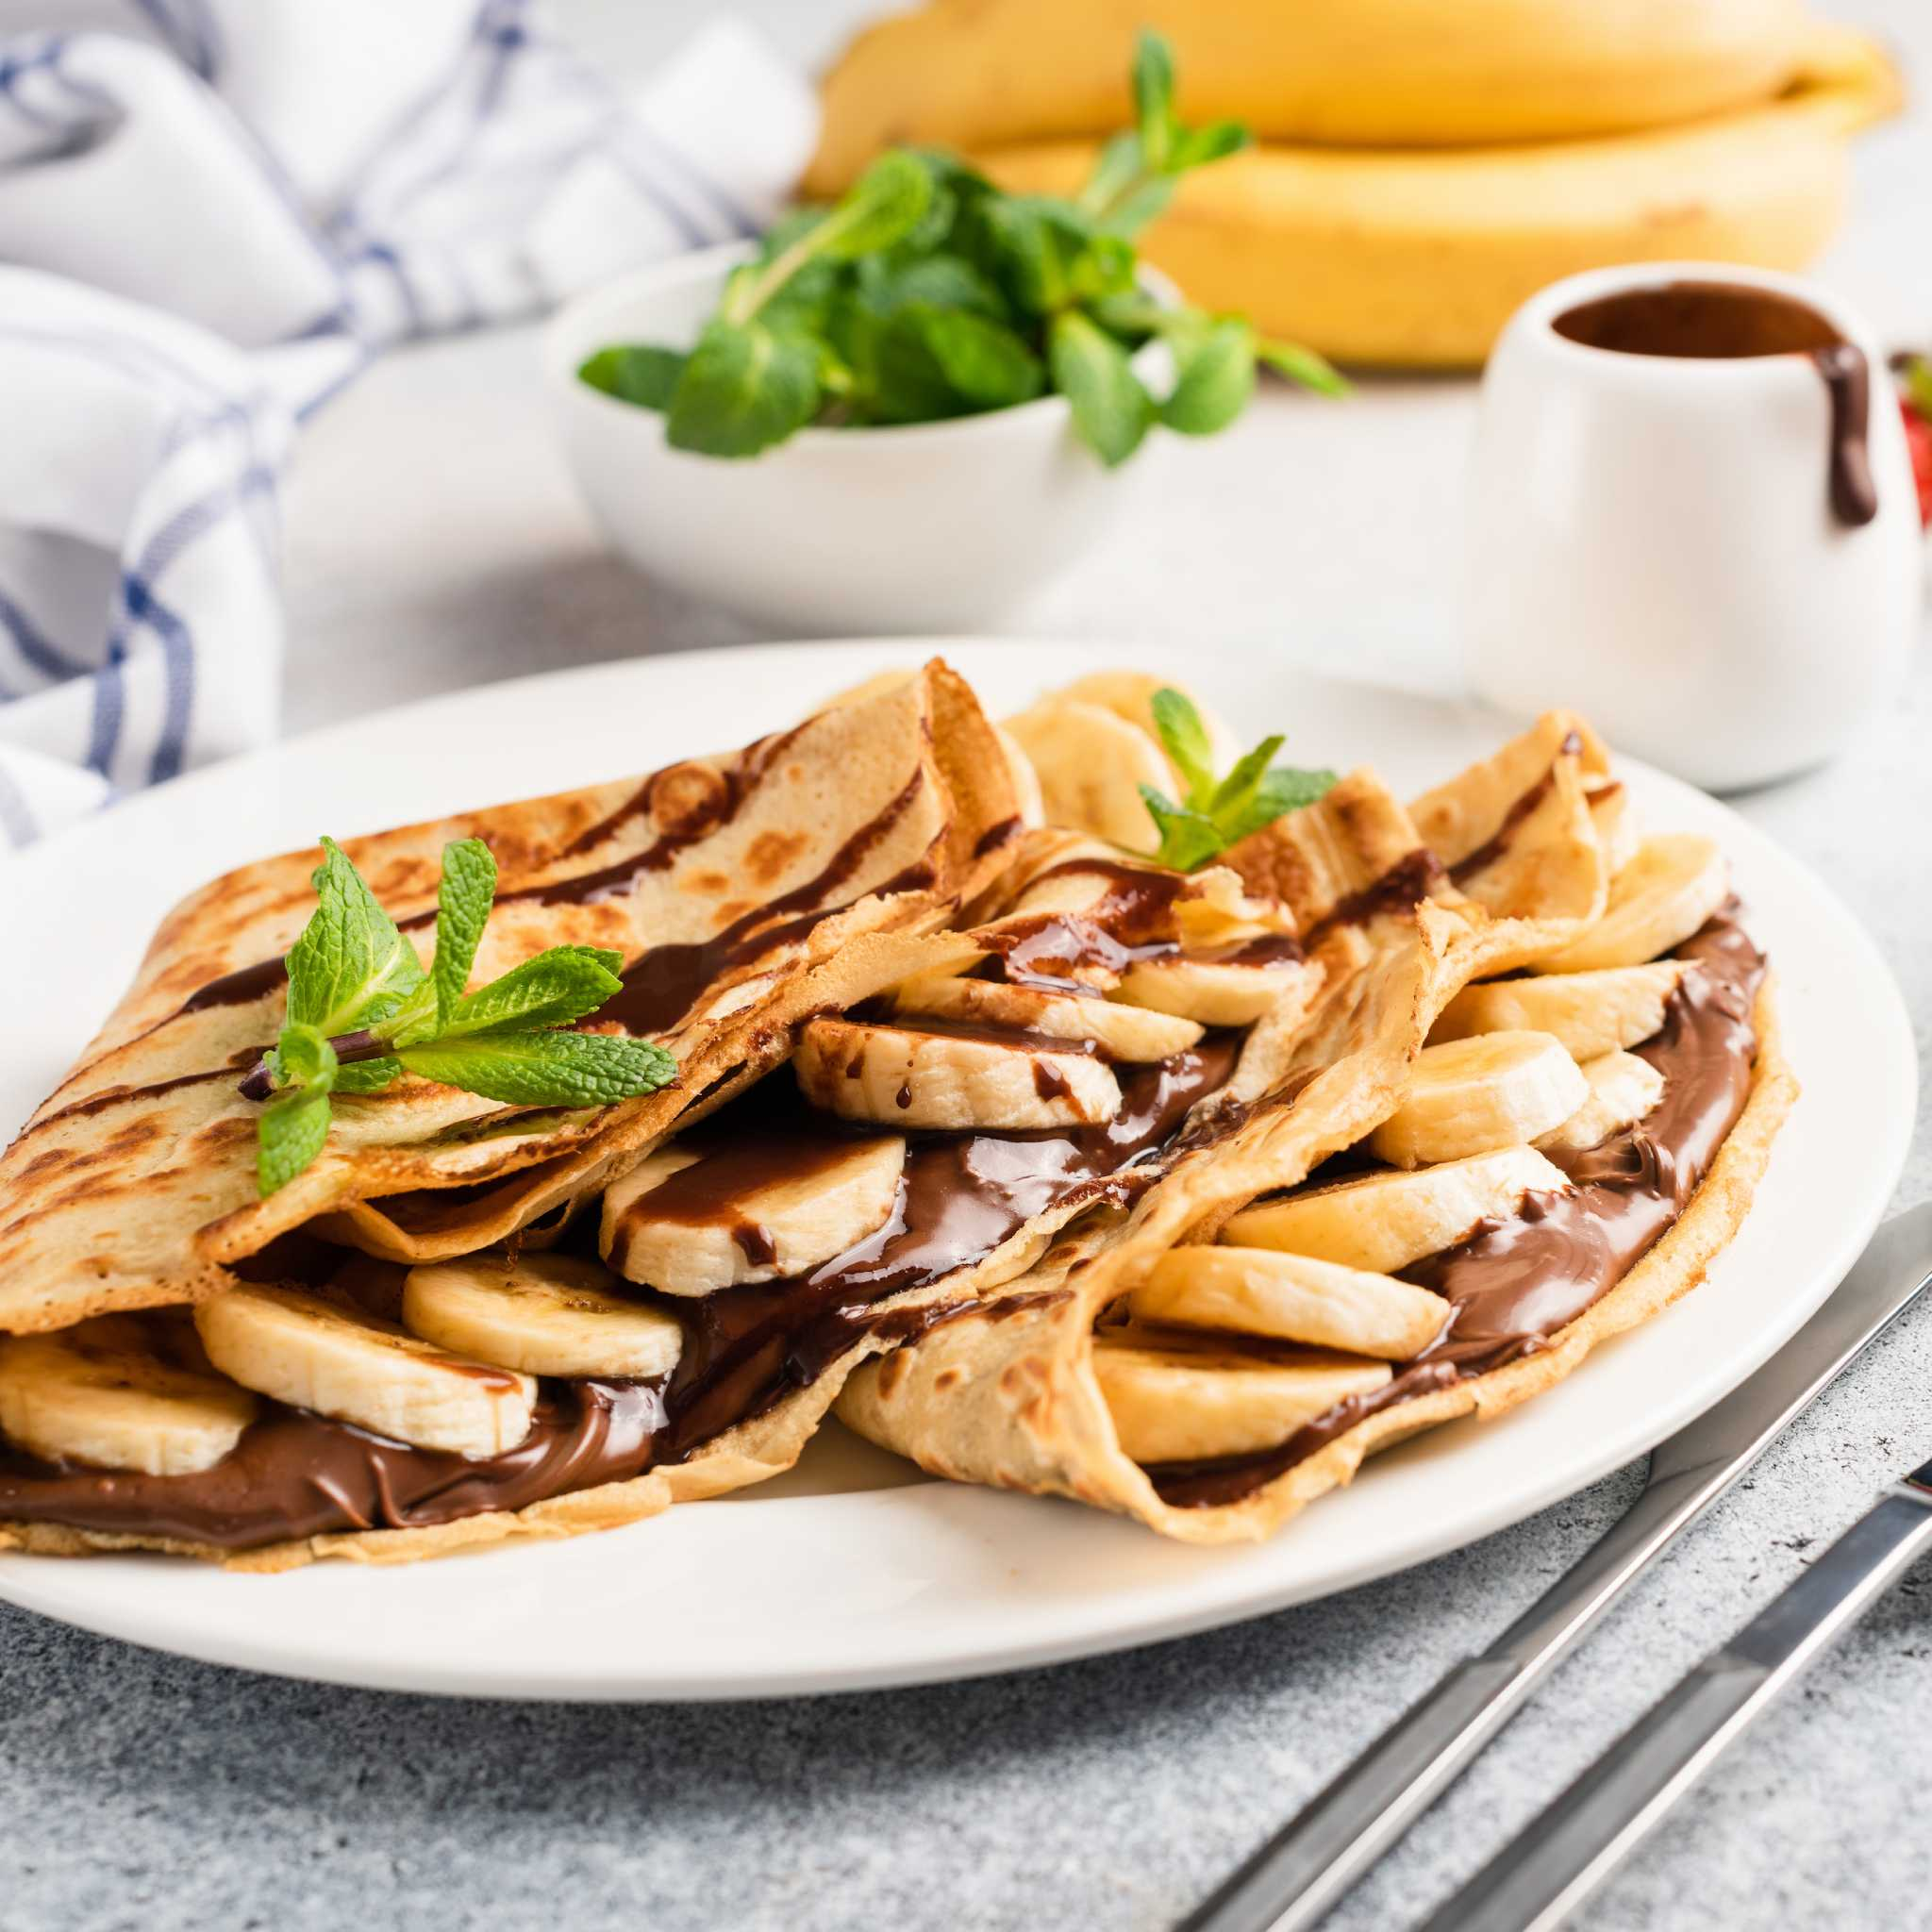 Crepes filled with Nutella and sliced banana and garnished with sprigs of mint